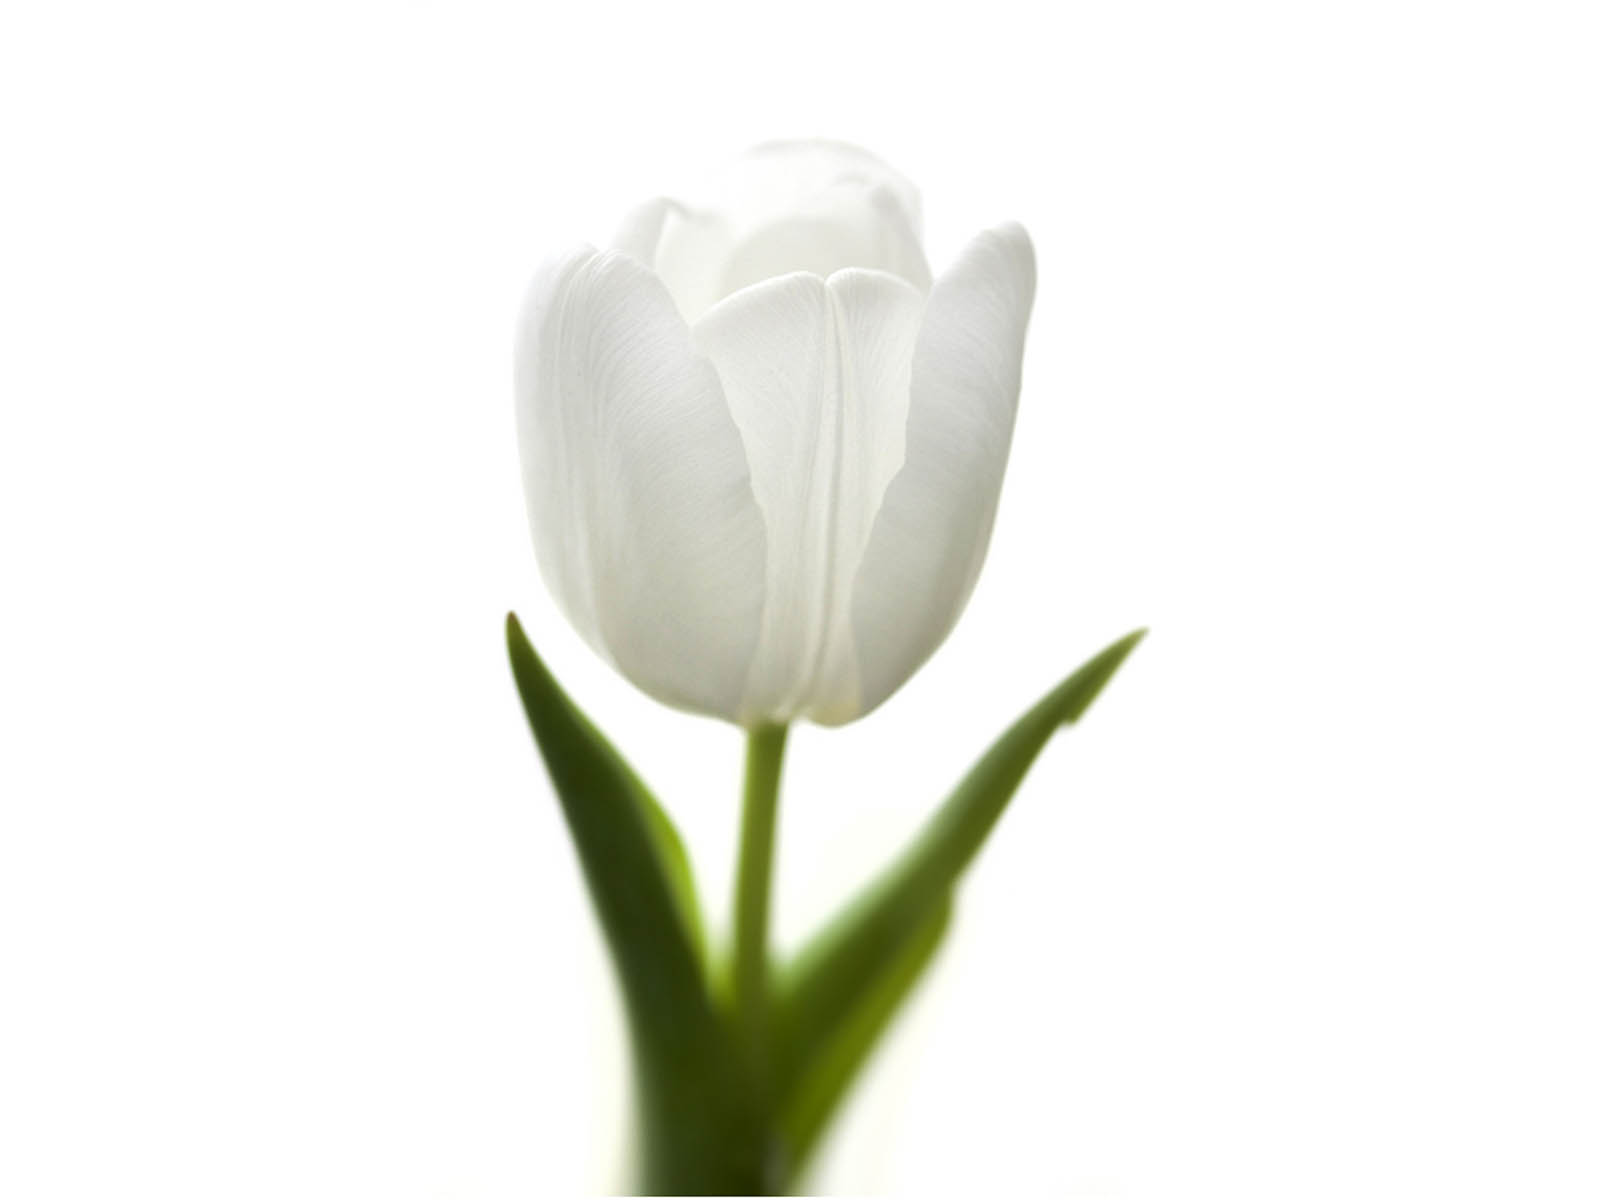 White tulip flowers hd wallpapers white tulip flowers dhlflorist Image collections